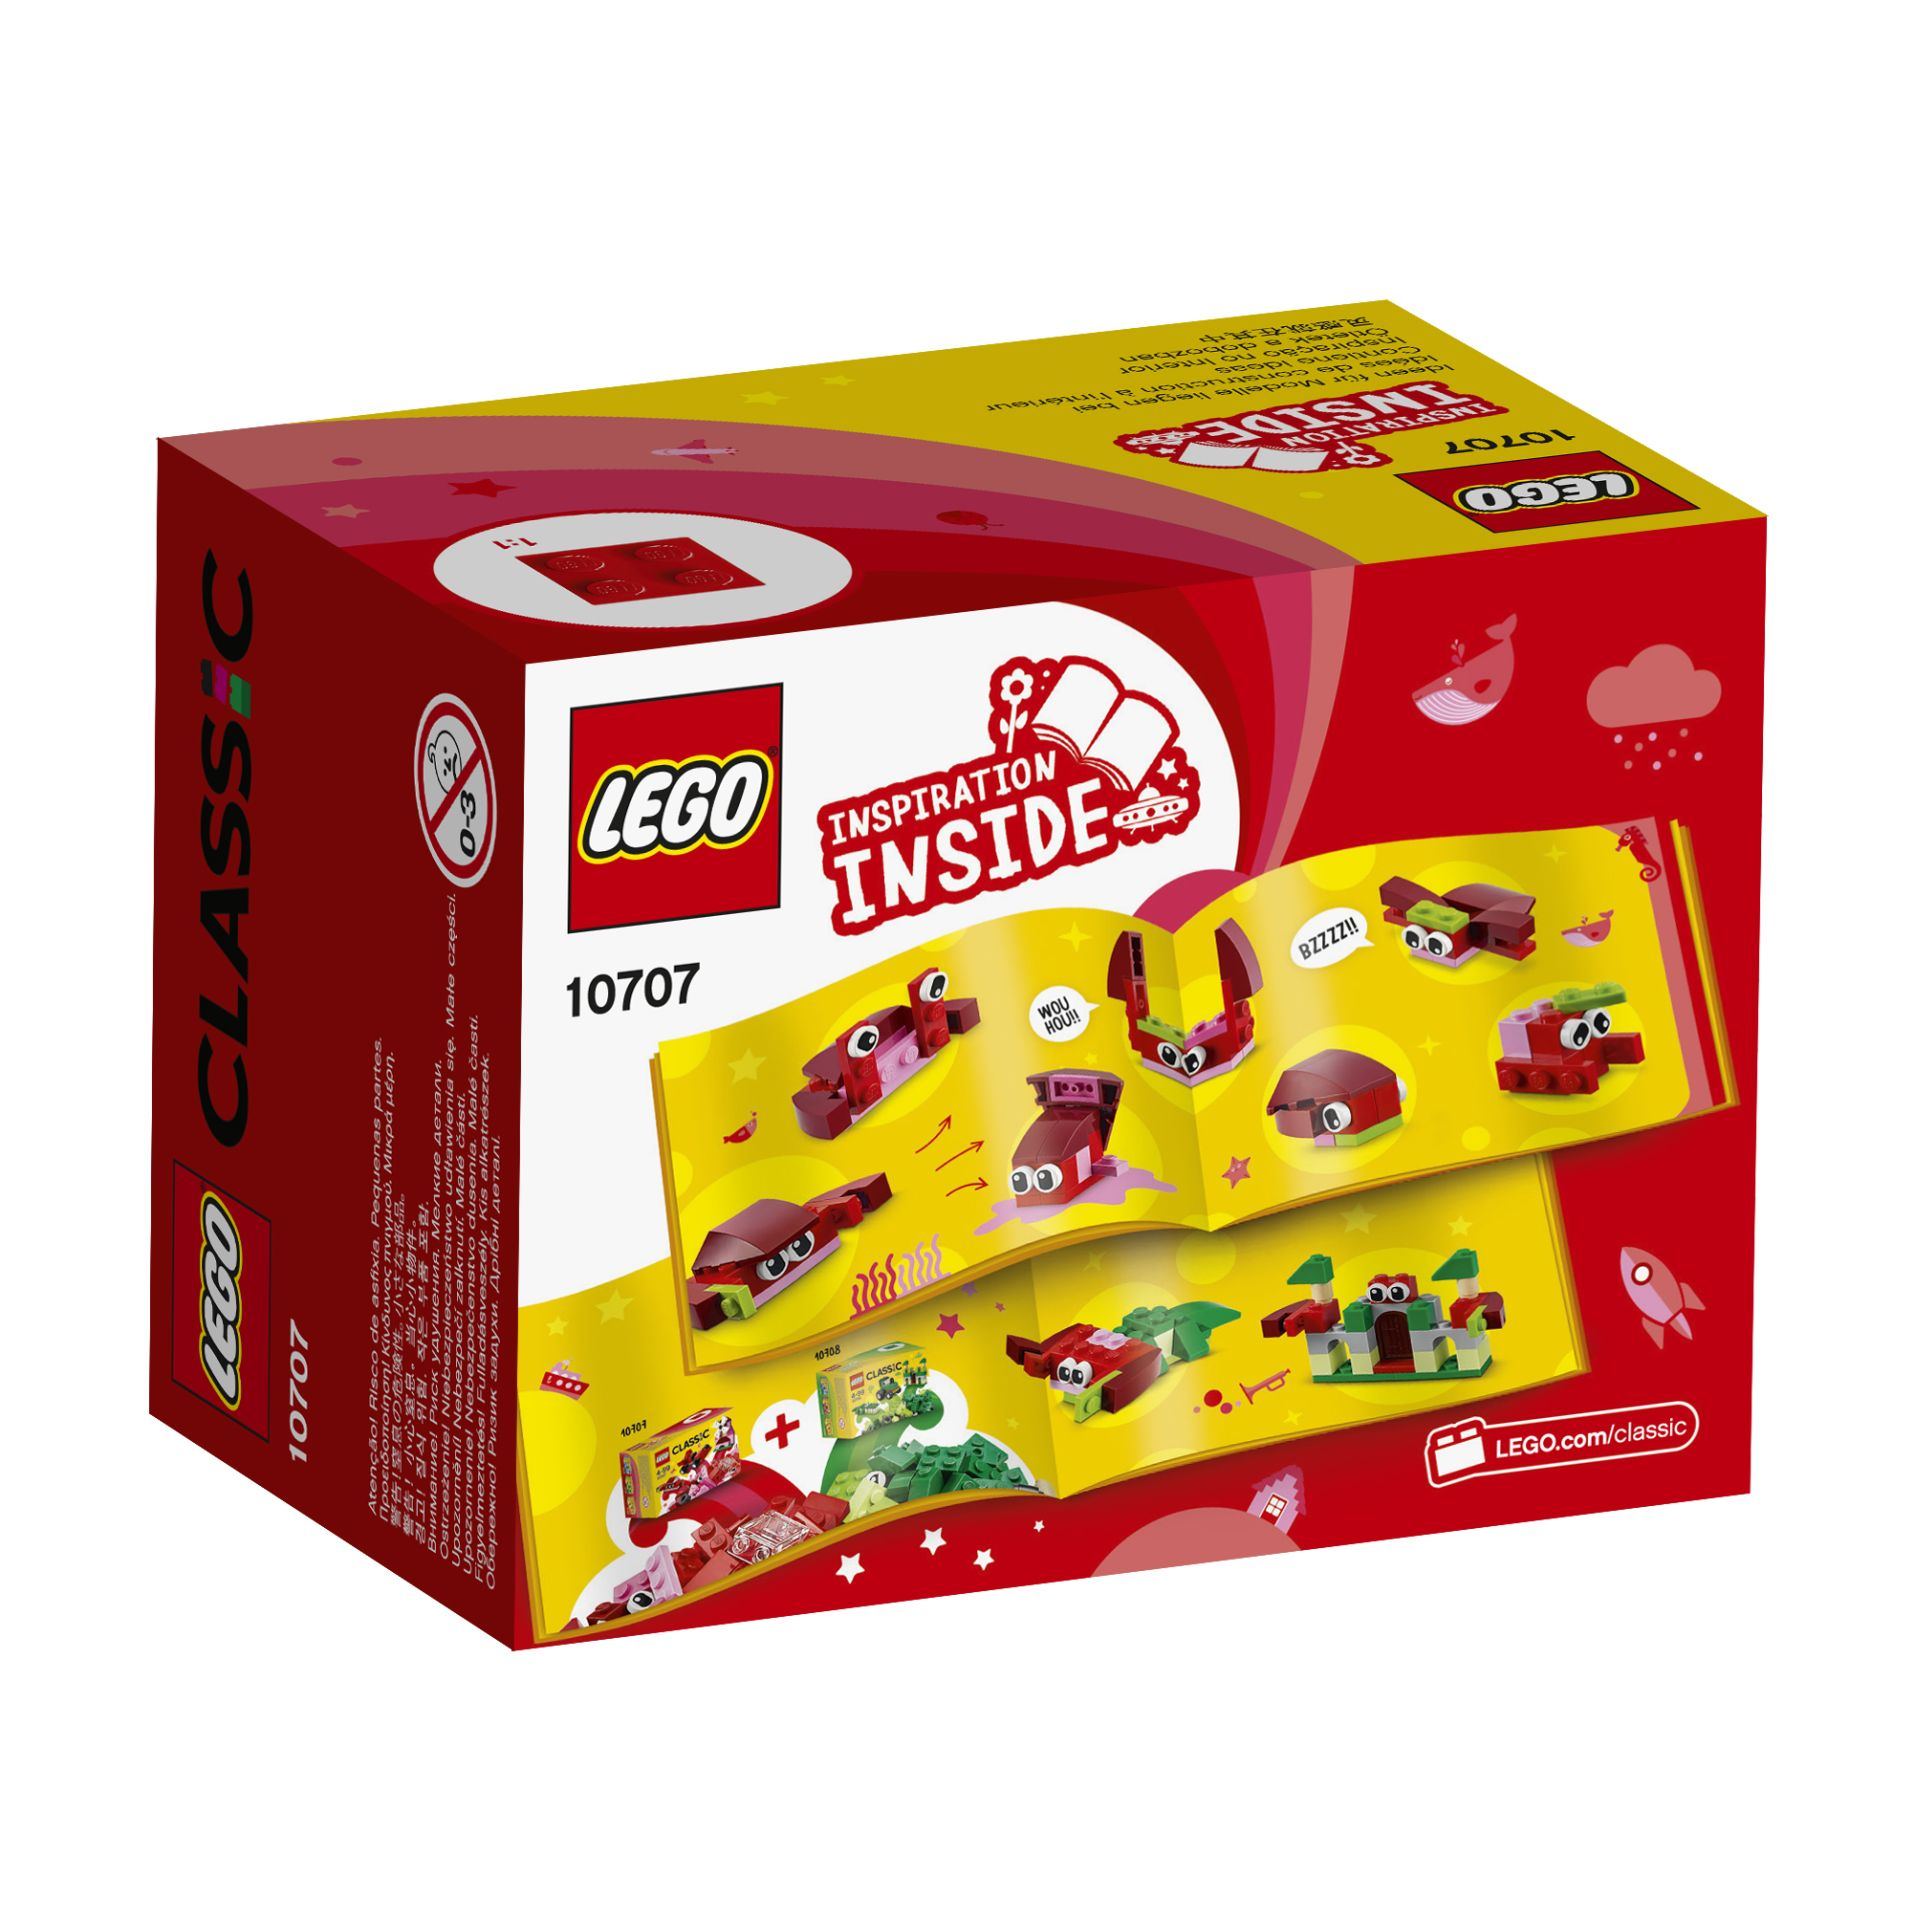 LEGO Classic creative box red 2017 Buy at kidsroom Toys